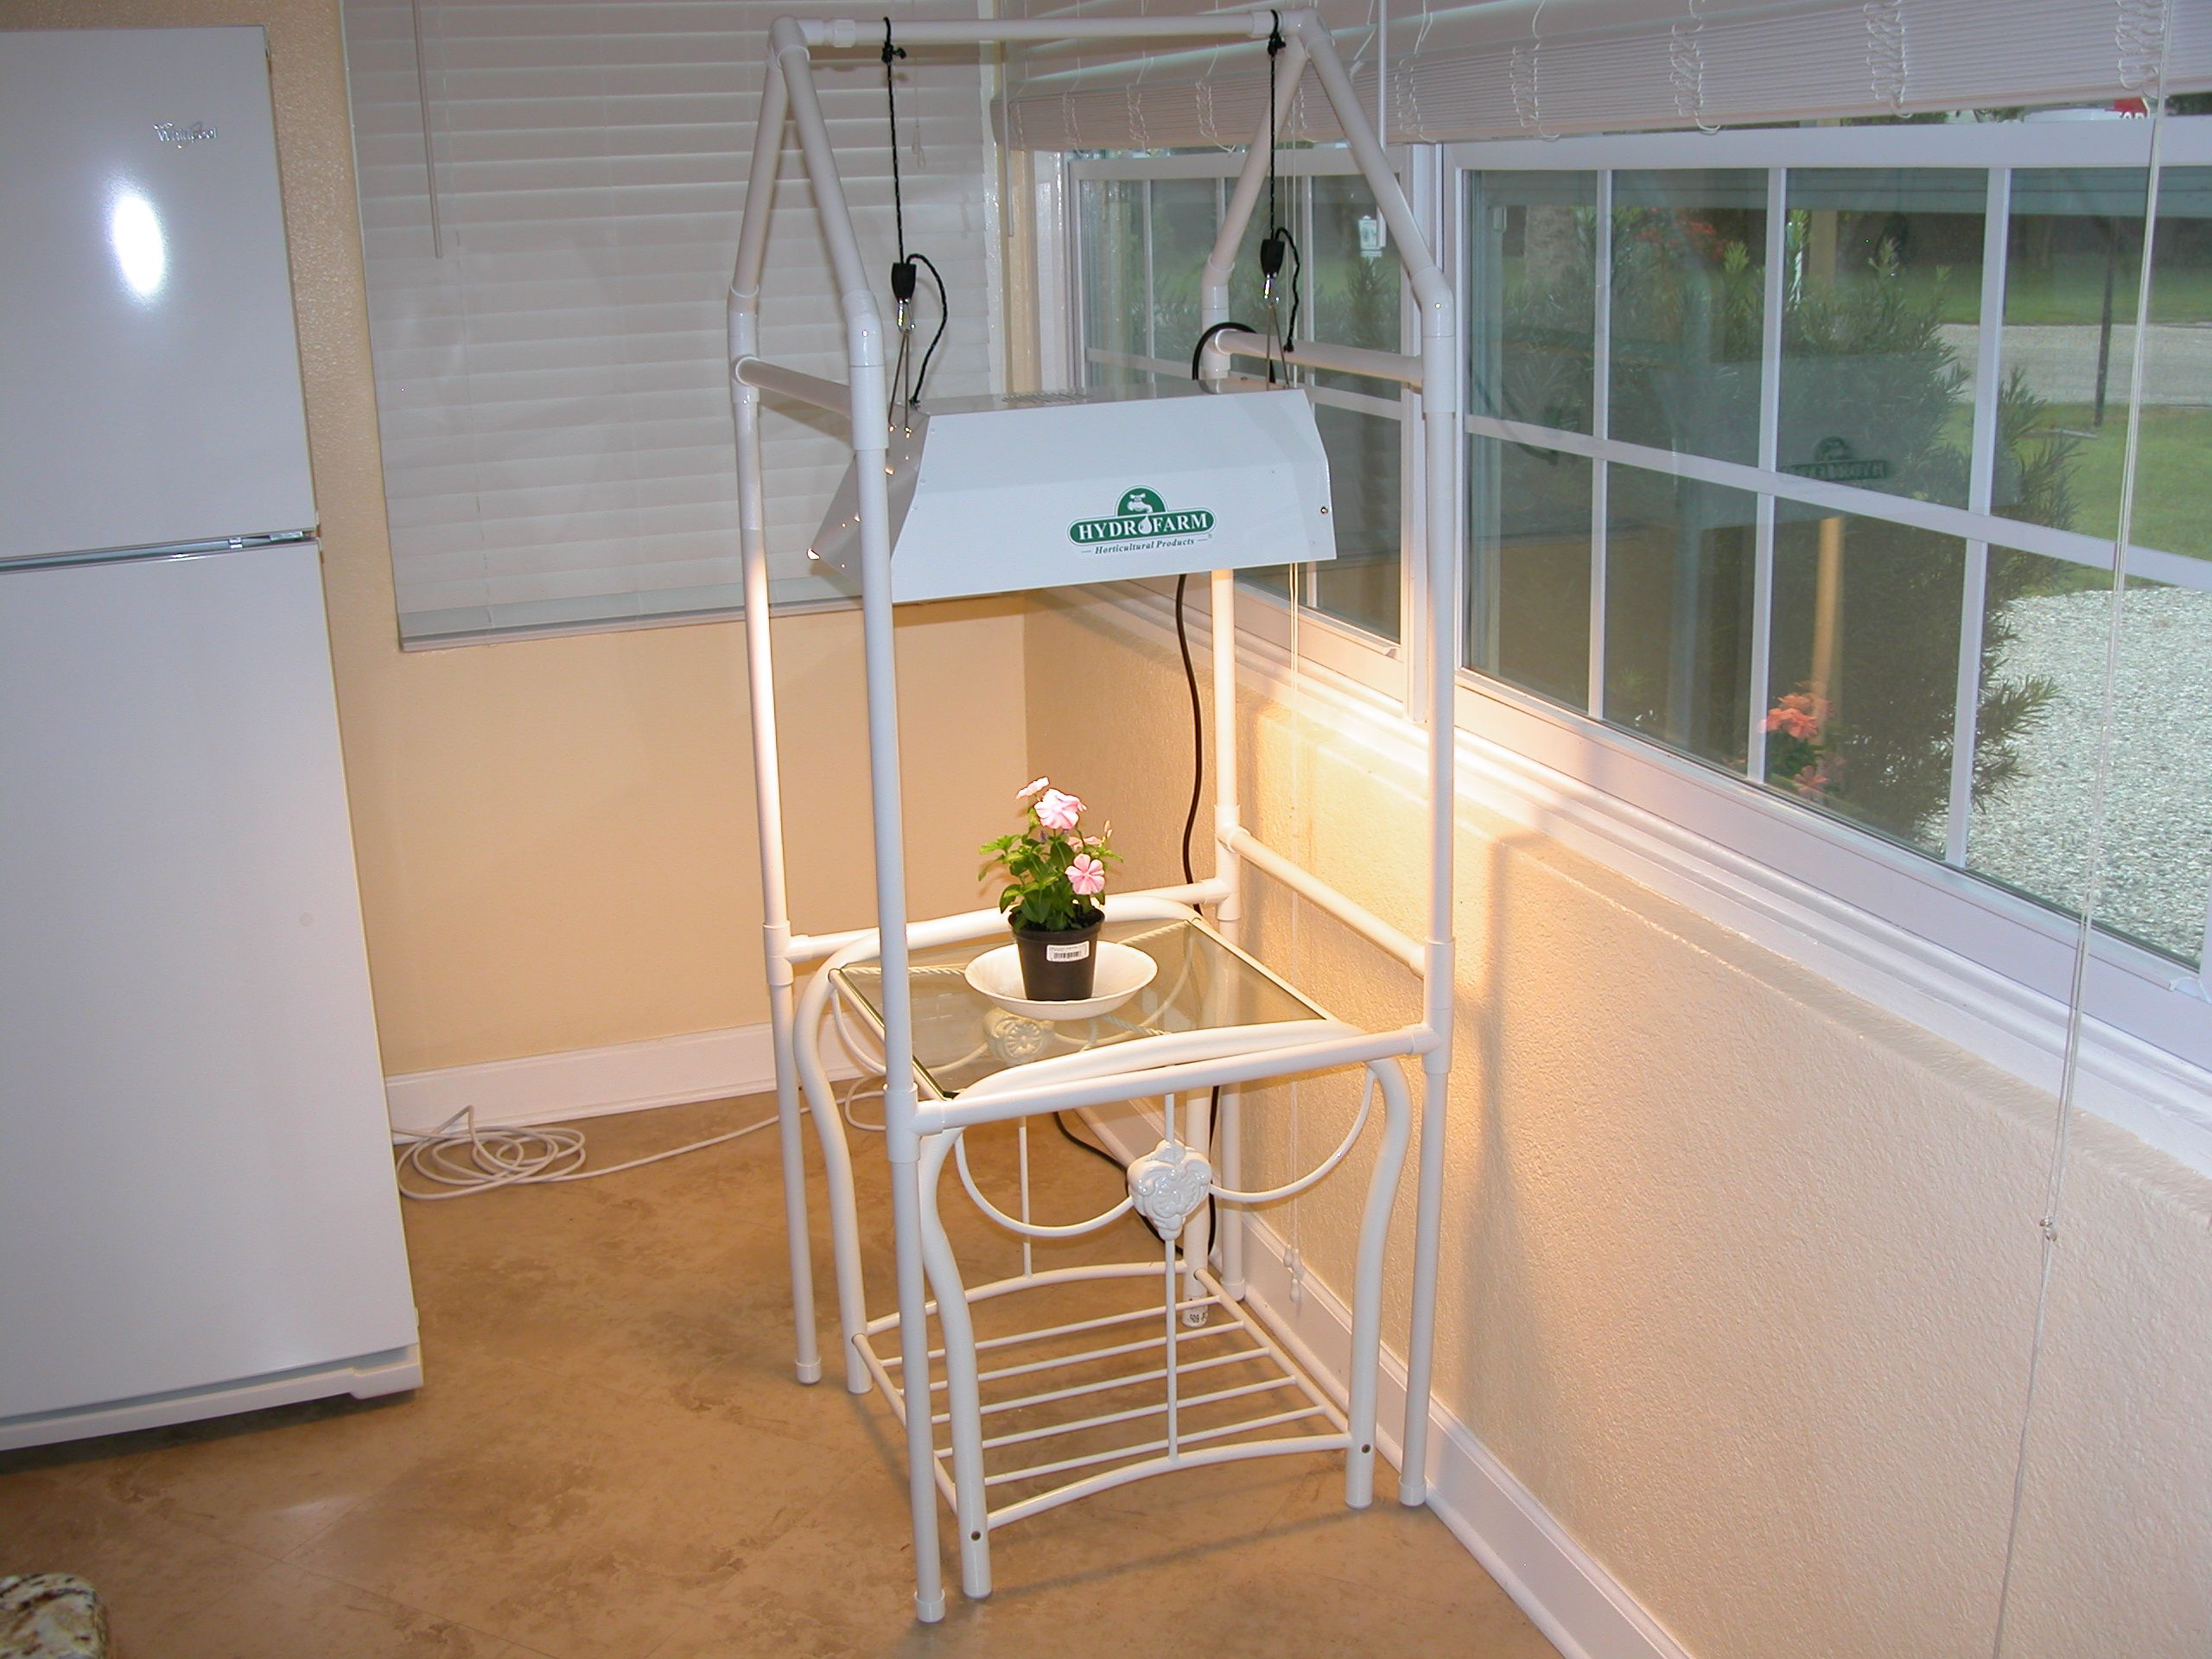 Pvc light stand my green thumb pinterest pvc projects pvc how to build a do it yourself pvc grow light pland stand with pictures solutioingenieria Choice Image